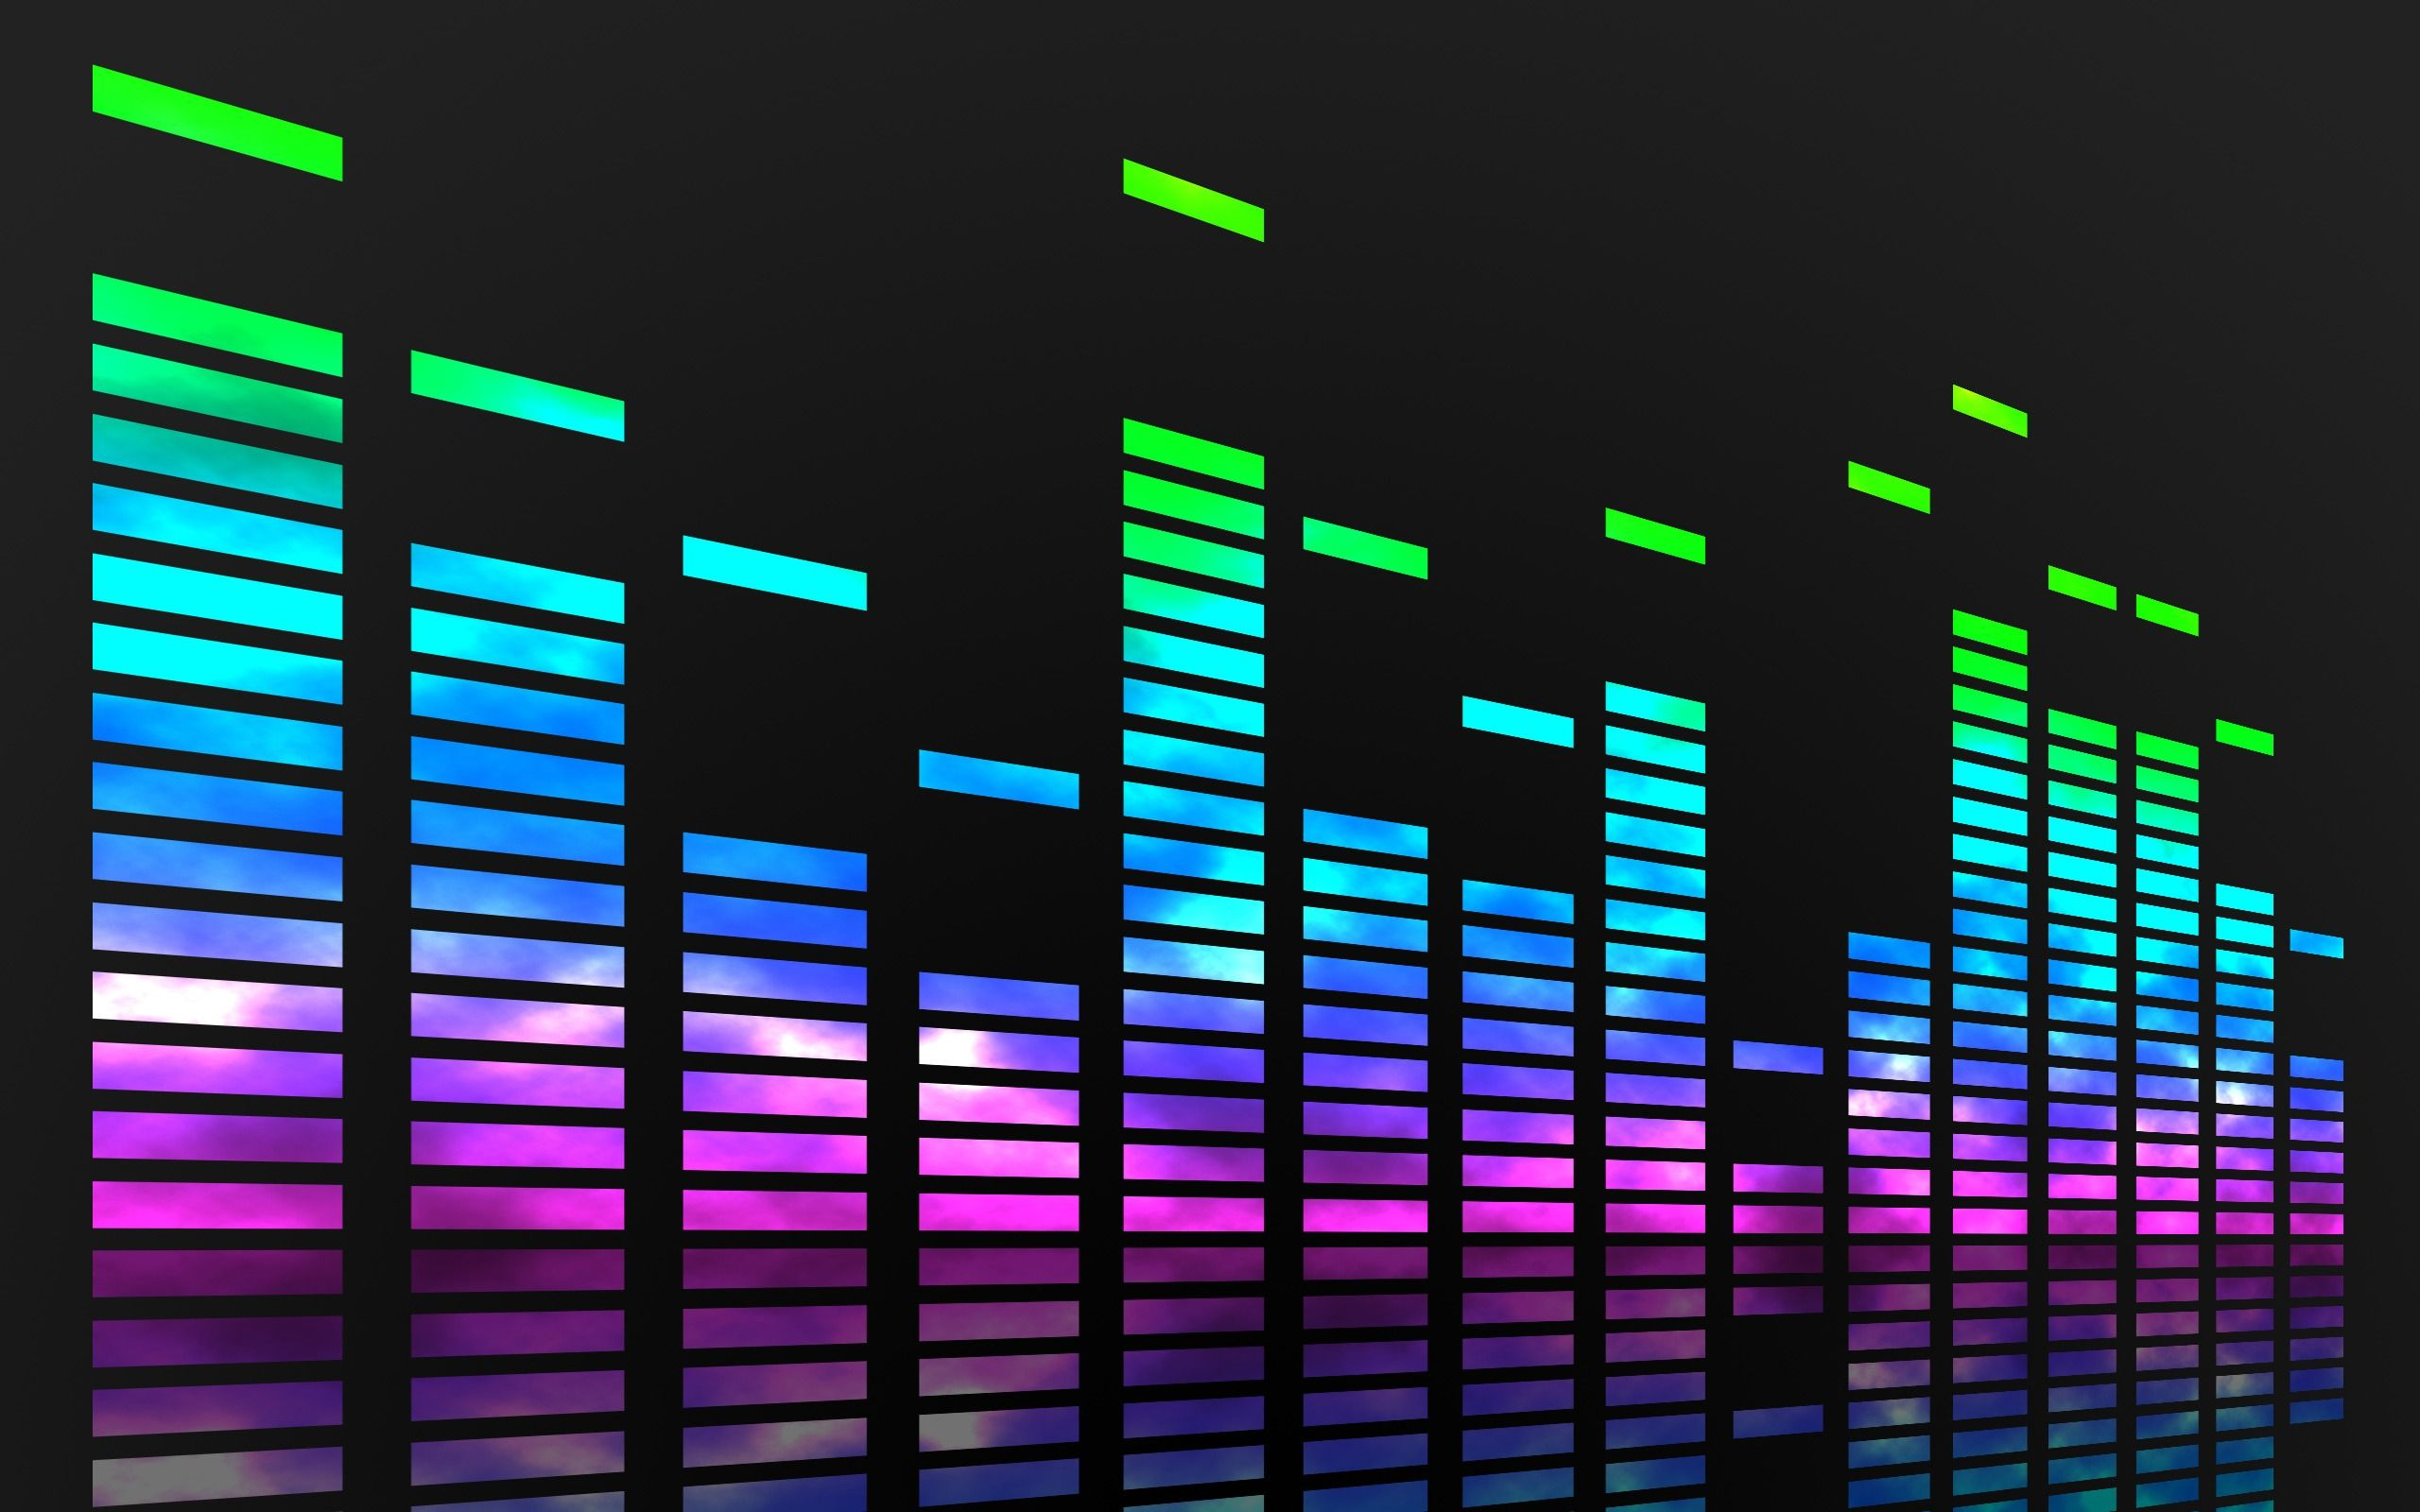 Good Wallpaper Music Neon Green - 1b344daad996fa35ab50b710ae776153  Perfect Image Reference_946293.jpg